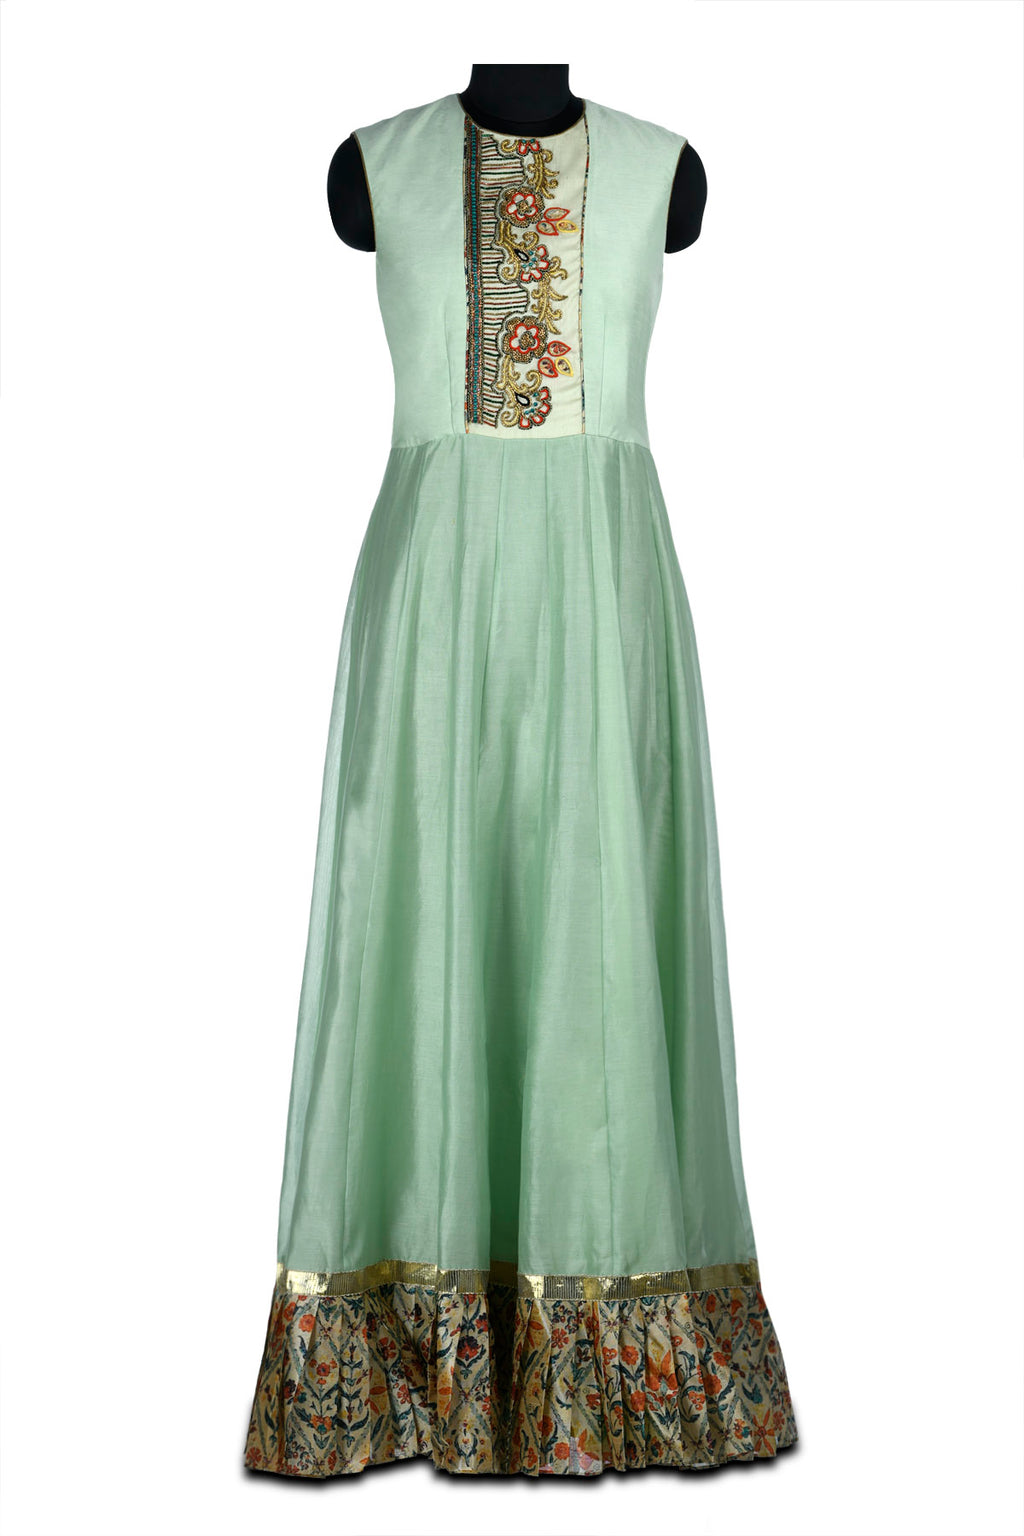 Buy pastel green and ivory embroidered chanderi maxi dress online in USA with printed borders. Shine at weddings and special occasions with beautiful Indian designer Anarkali suits, traditional salwar suits, sharara suits, designer lehengas from Pure Elegance Indian clothing store in USA.-full view